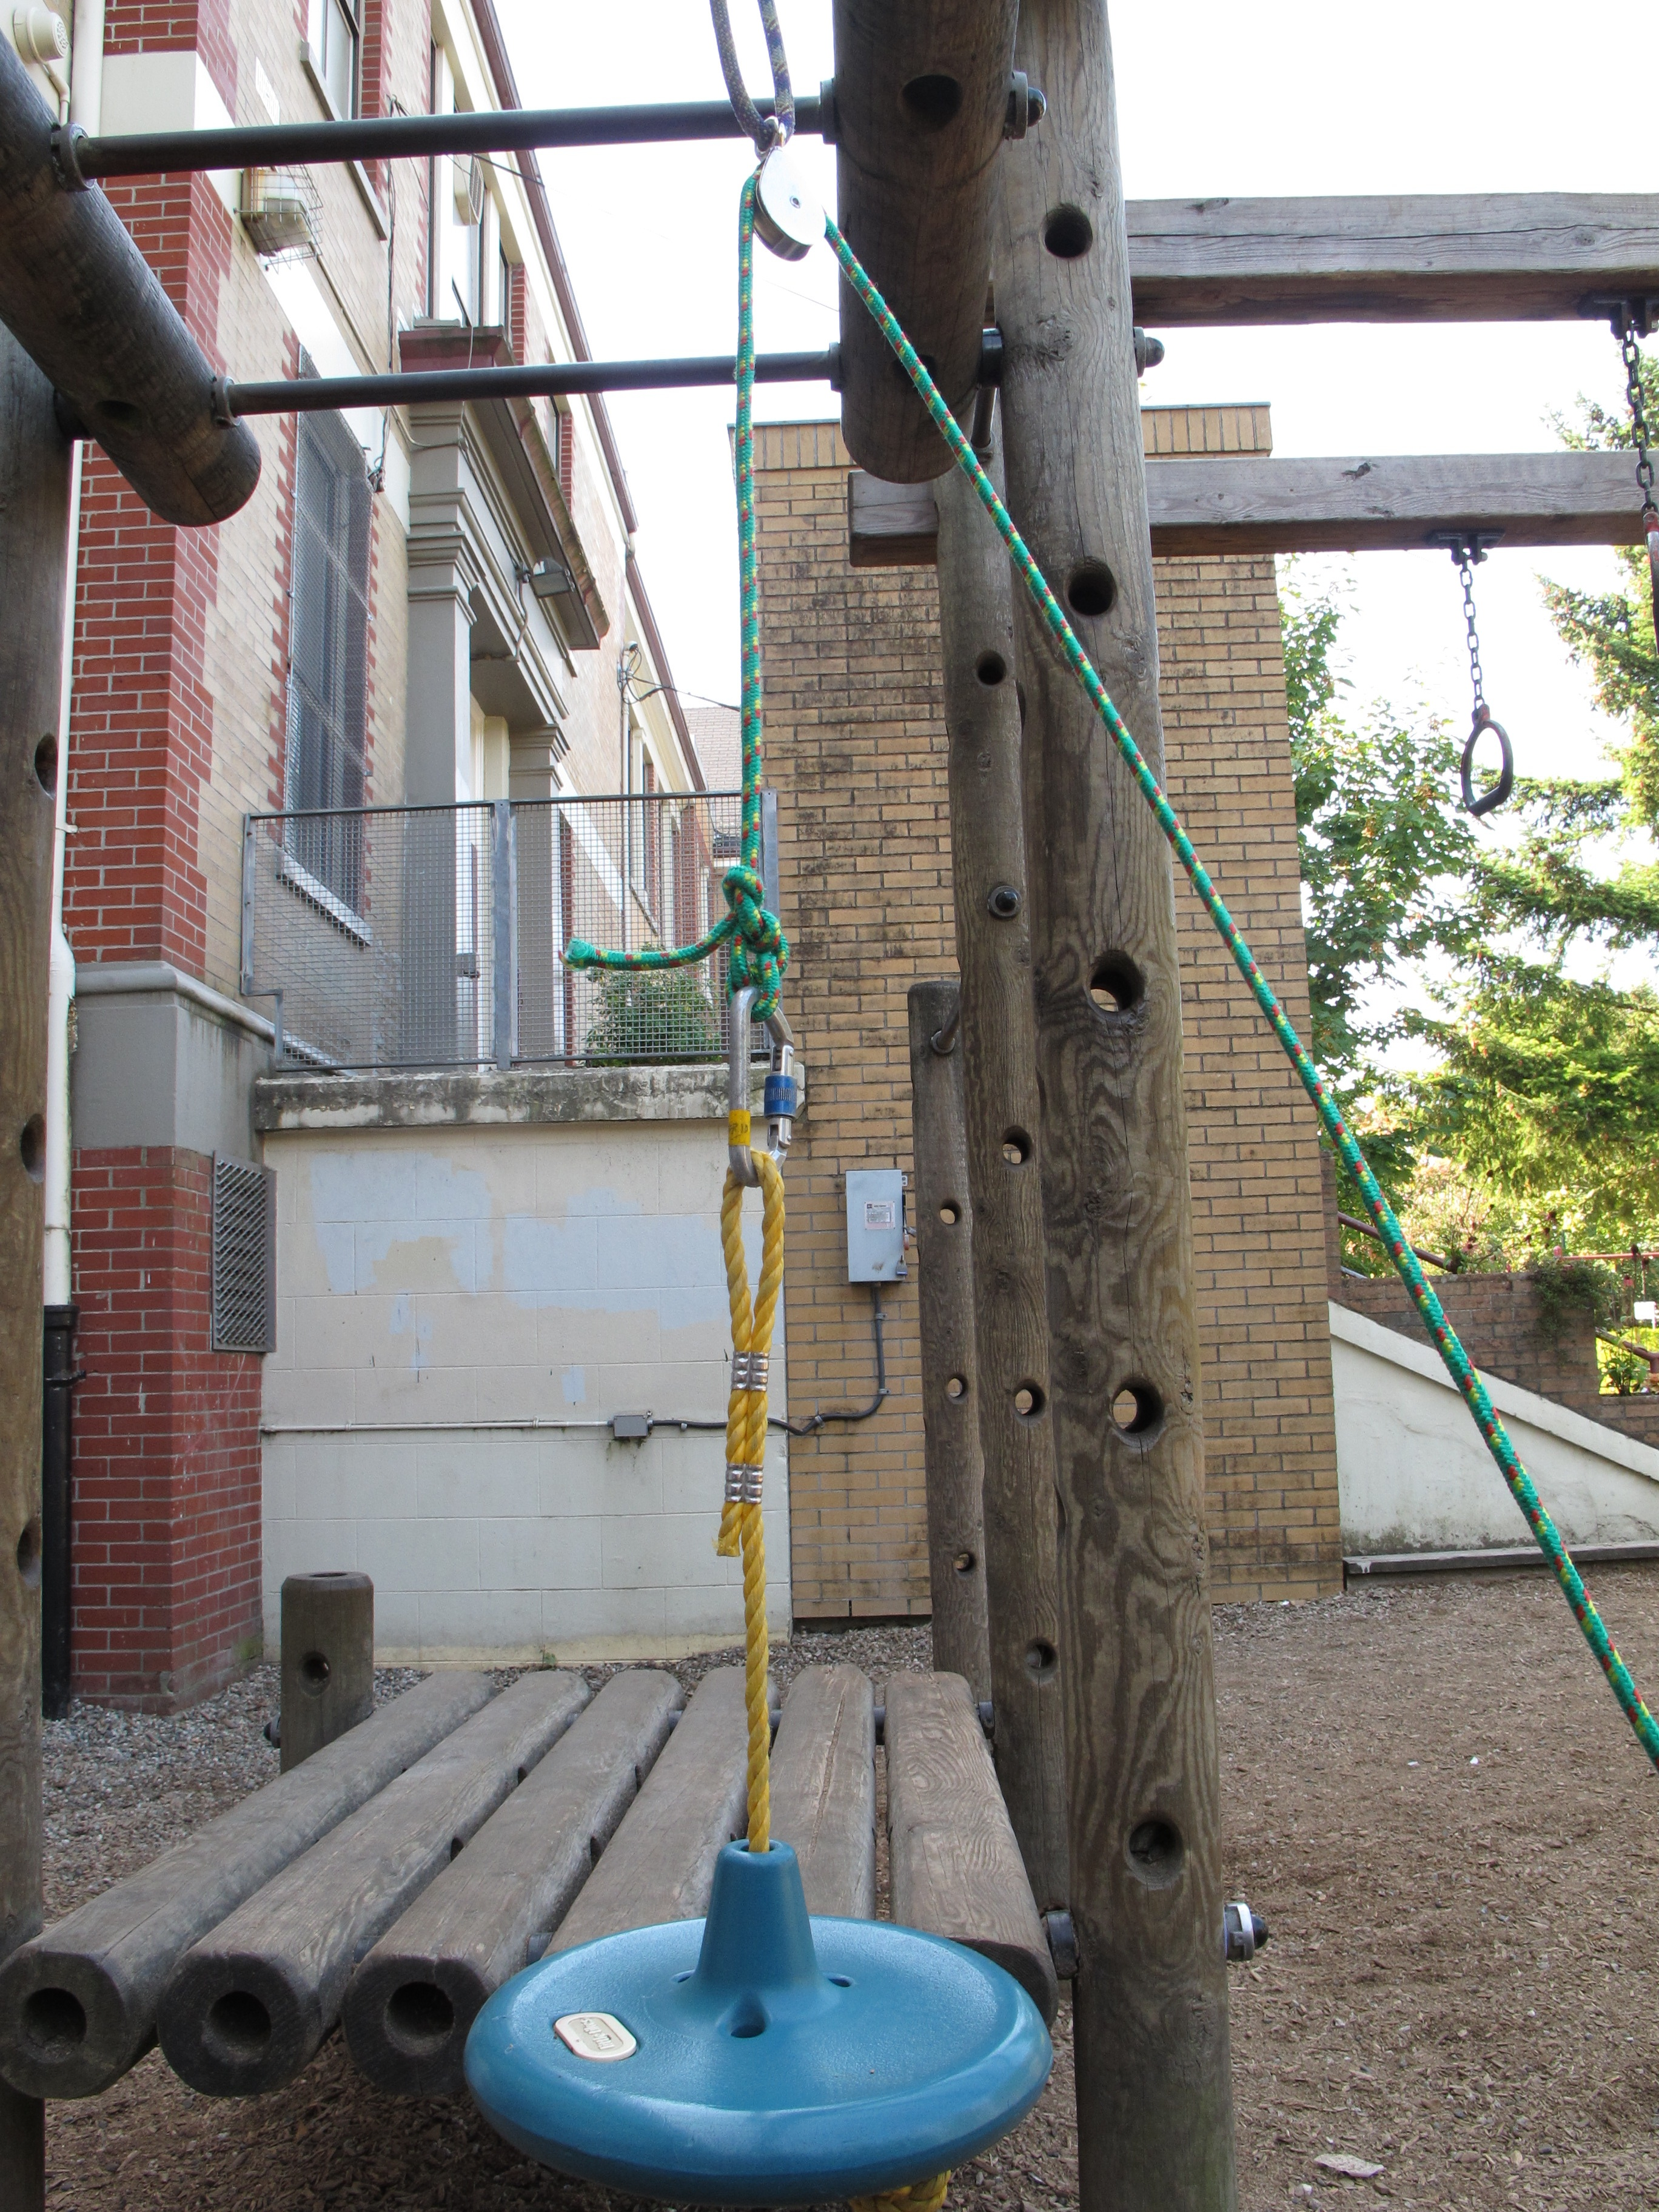 Heavy Equipment Playground >> Pulleys to lift a person or heavy load   ingridscience.ca